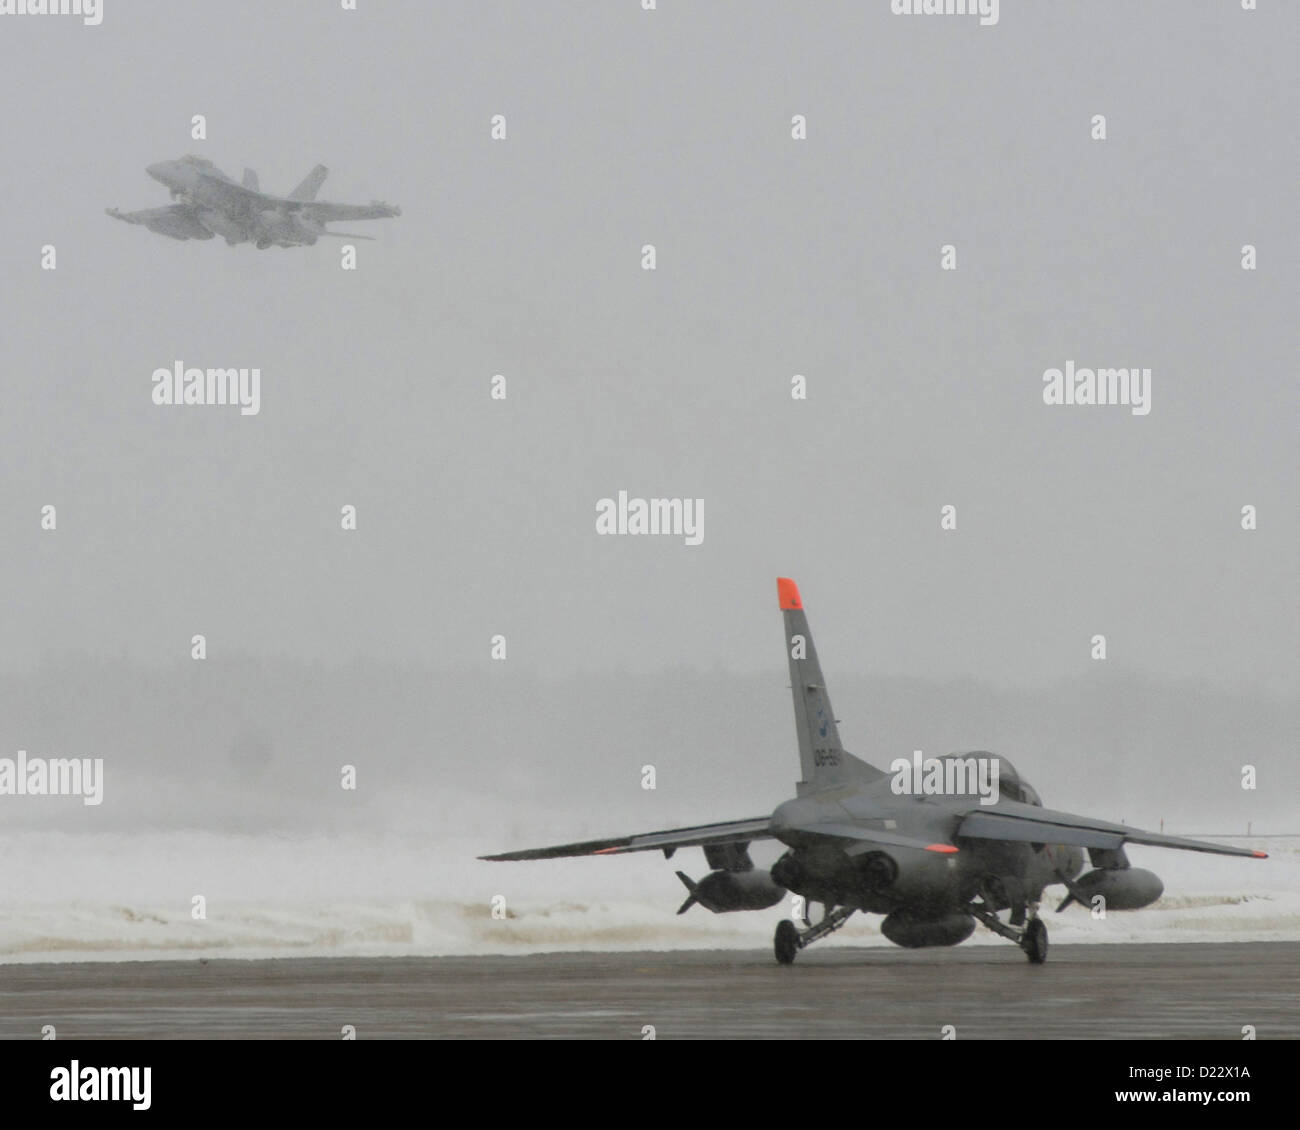 MISAWA AIR BASE, Japan (Jan. 10, 2013) An EA-18G Growler from Electronic Attack Squadron 132 takes off from the - Stock Image